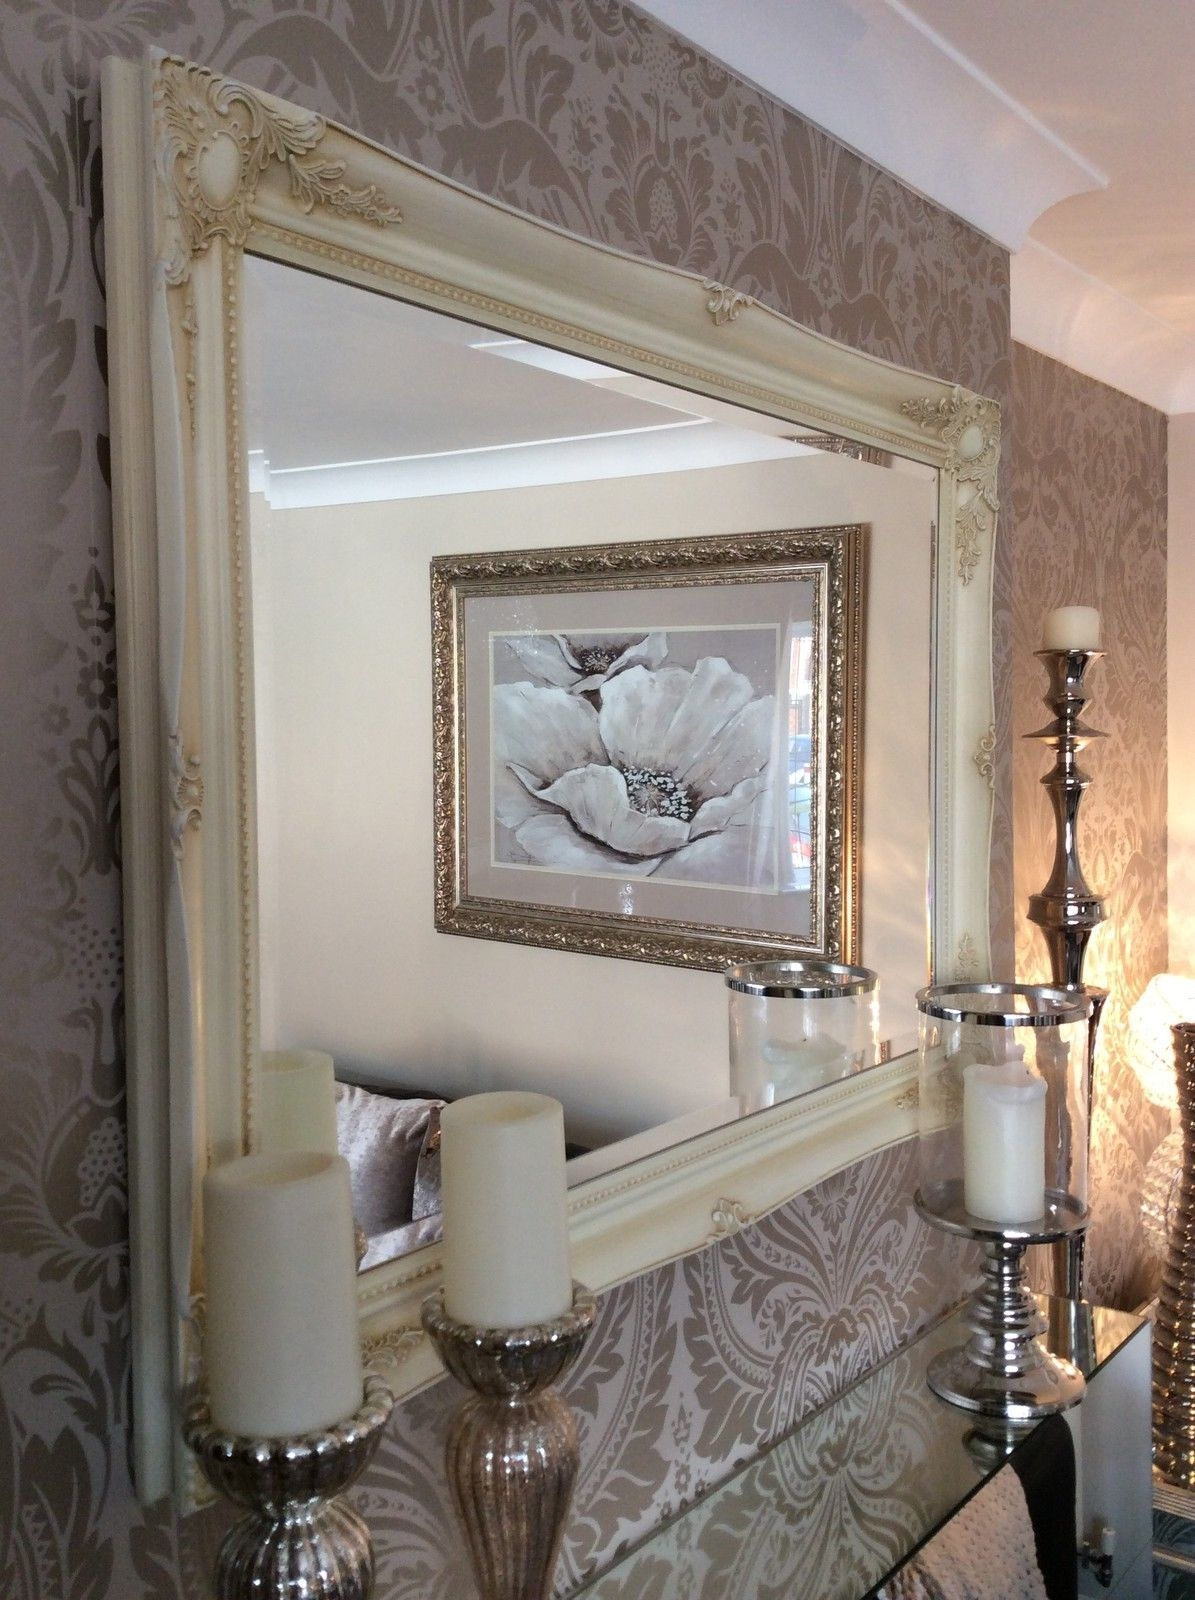 Ornate Cream Ivory Shab Chic French Inspired Mirror Bargain Within French Inspired Mirrors (Image 14 of 15)